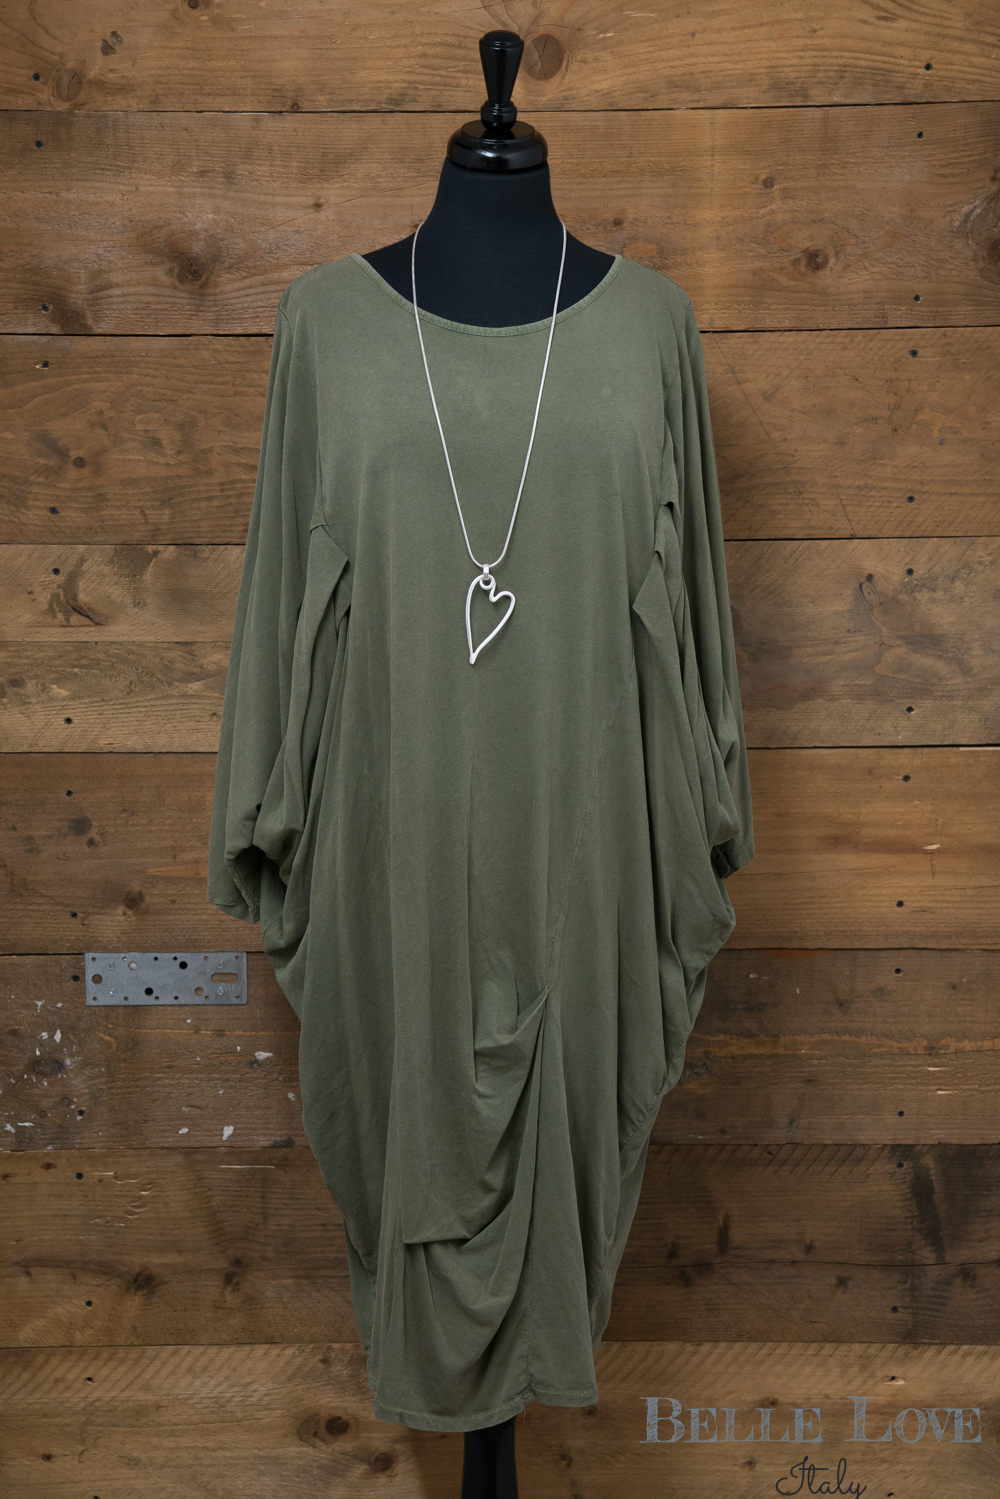 Belle Love Italy Batwing Dress